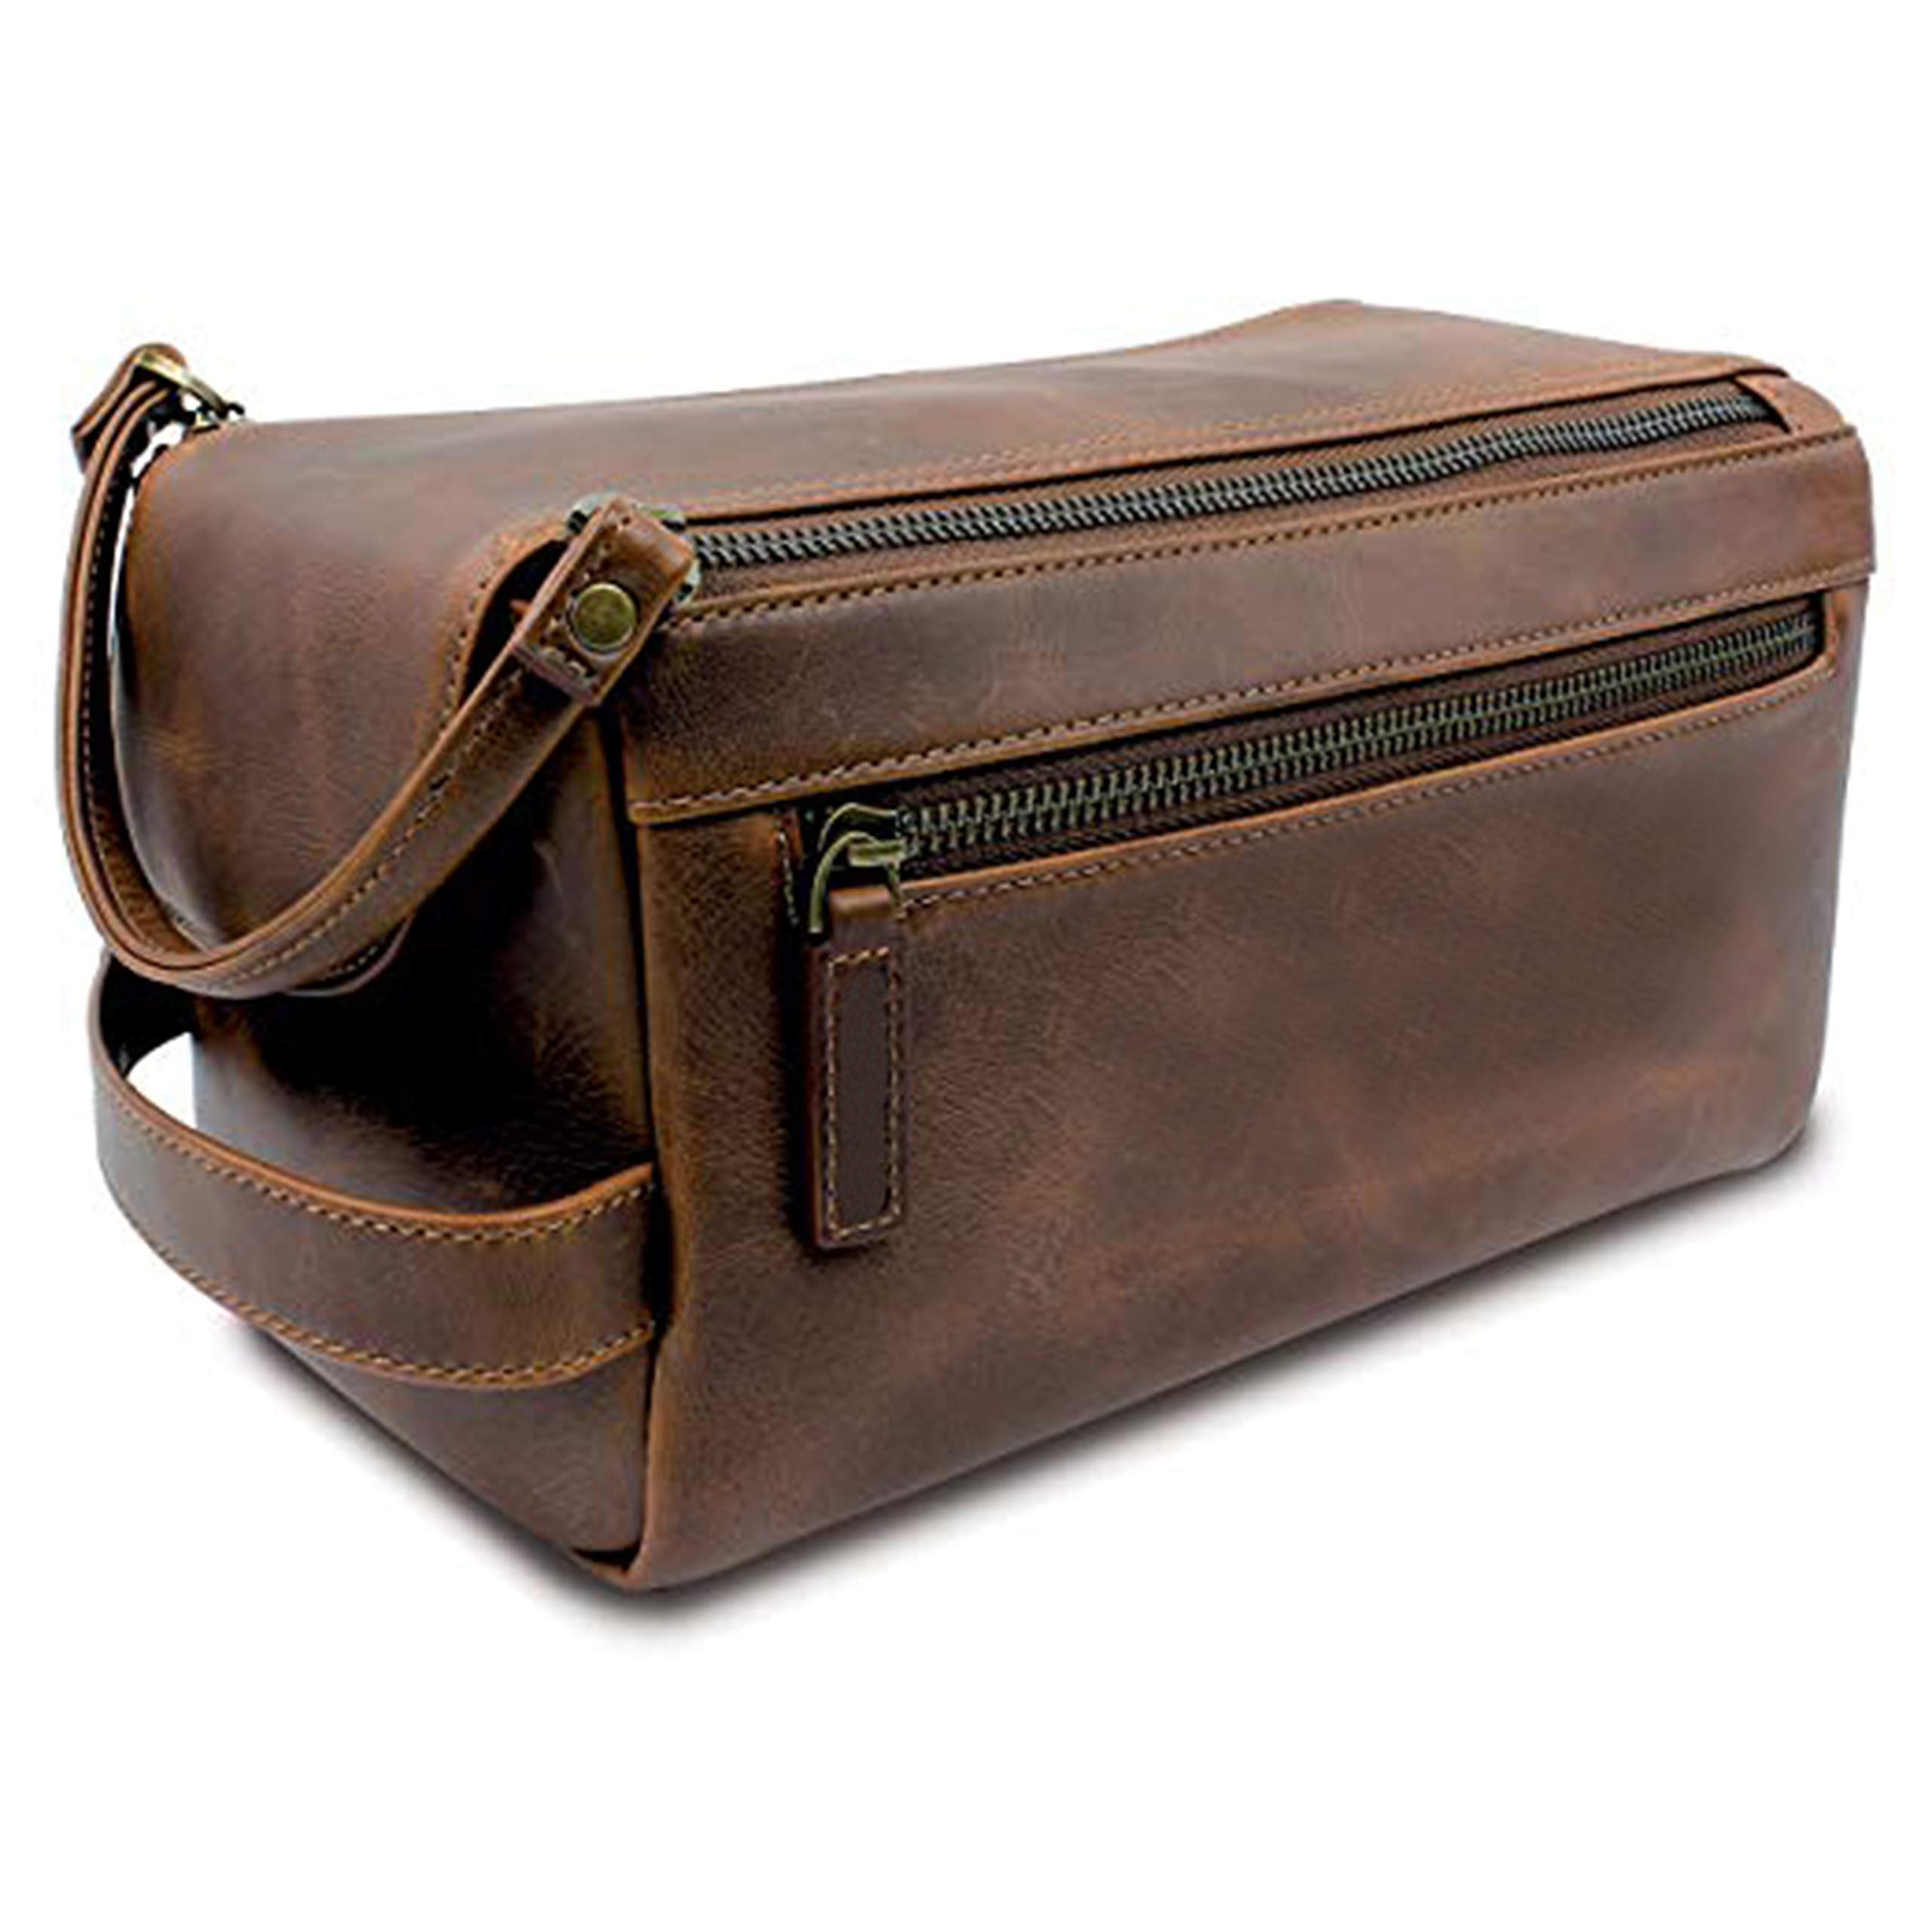 Genuine Buffalo Leather Unisex Toiletry Bag Travel Dopp Kit Grooming and Shaving Kit ~ for Men Women ~ Hanging Zippered Cosmetic Pouch ~ Bathroom Makeup Case